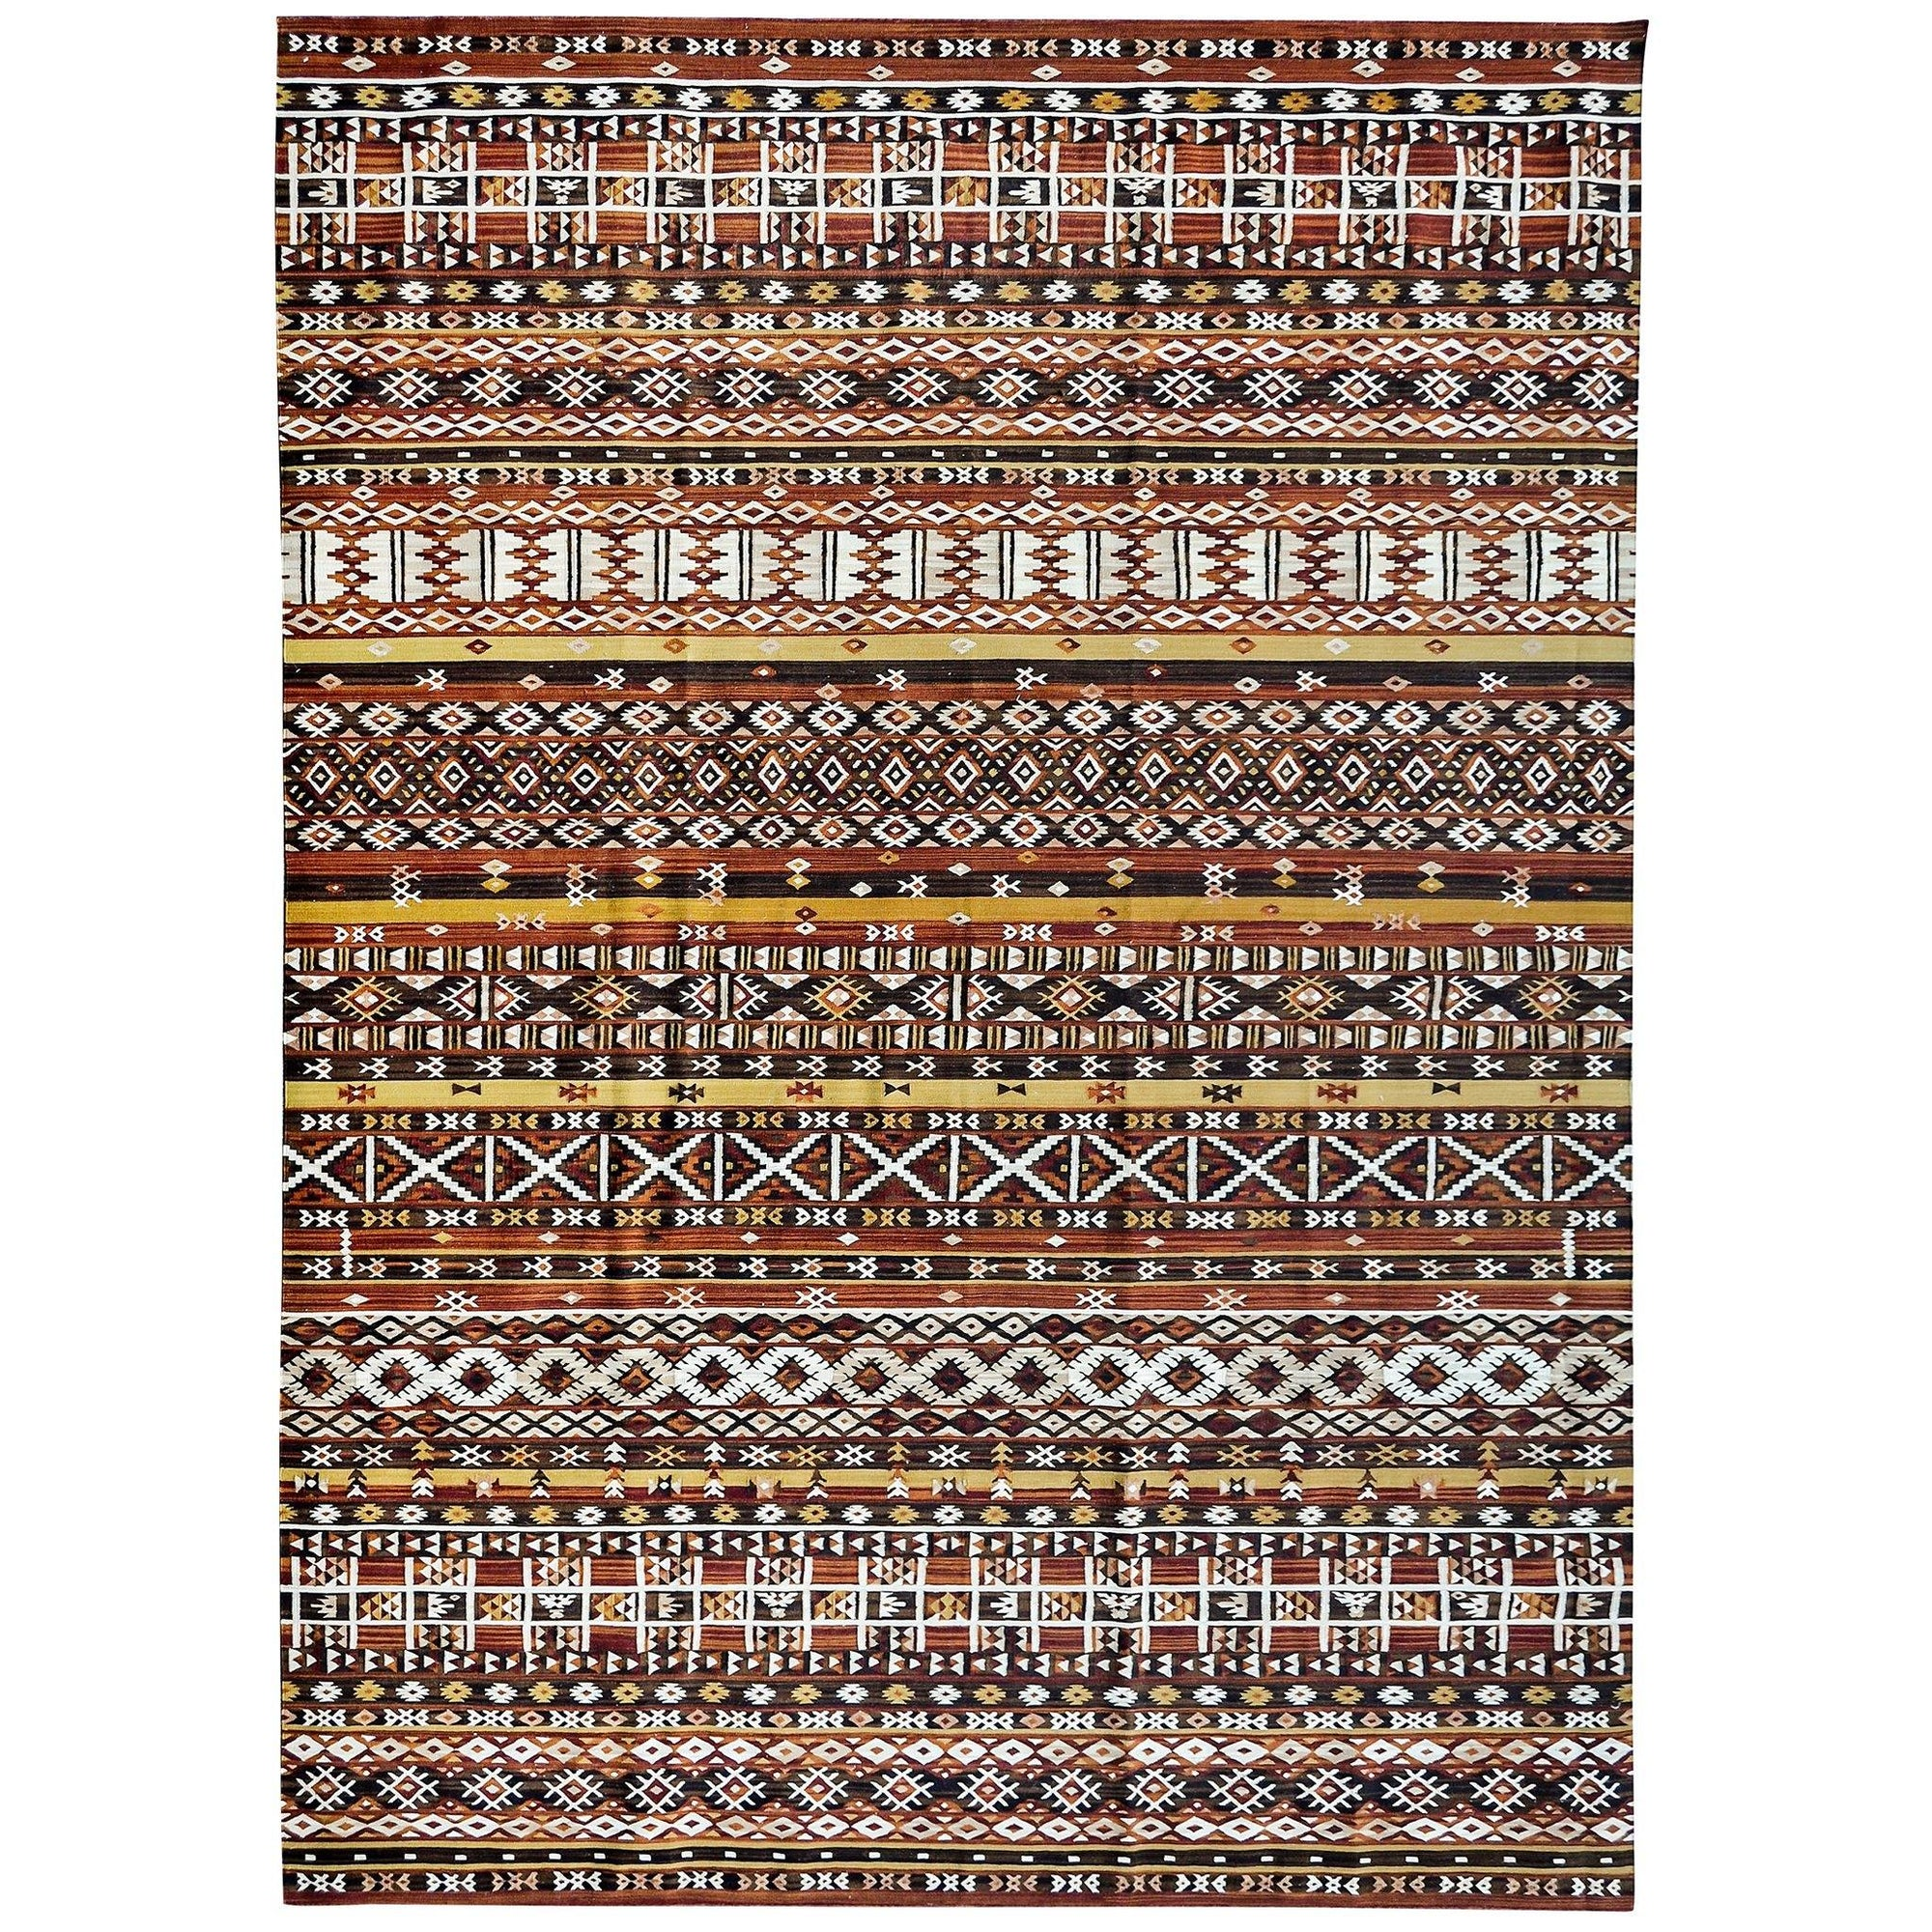 Large Persian 100% Wool Kilim Rug 260cm x 344cm Persian-Rug | House-of-Haghi | NewMarket | Auckland | NZ | Handmade Persian Rugs | Hand Knotted Persian Rugs